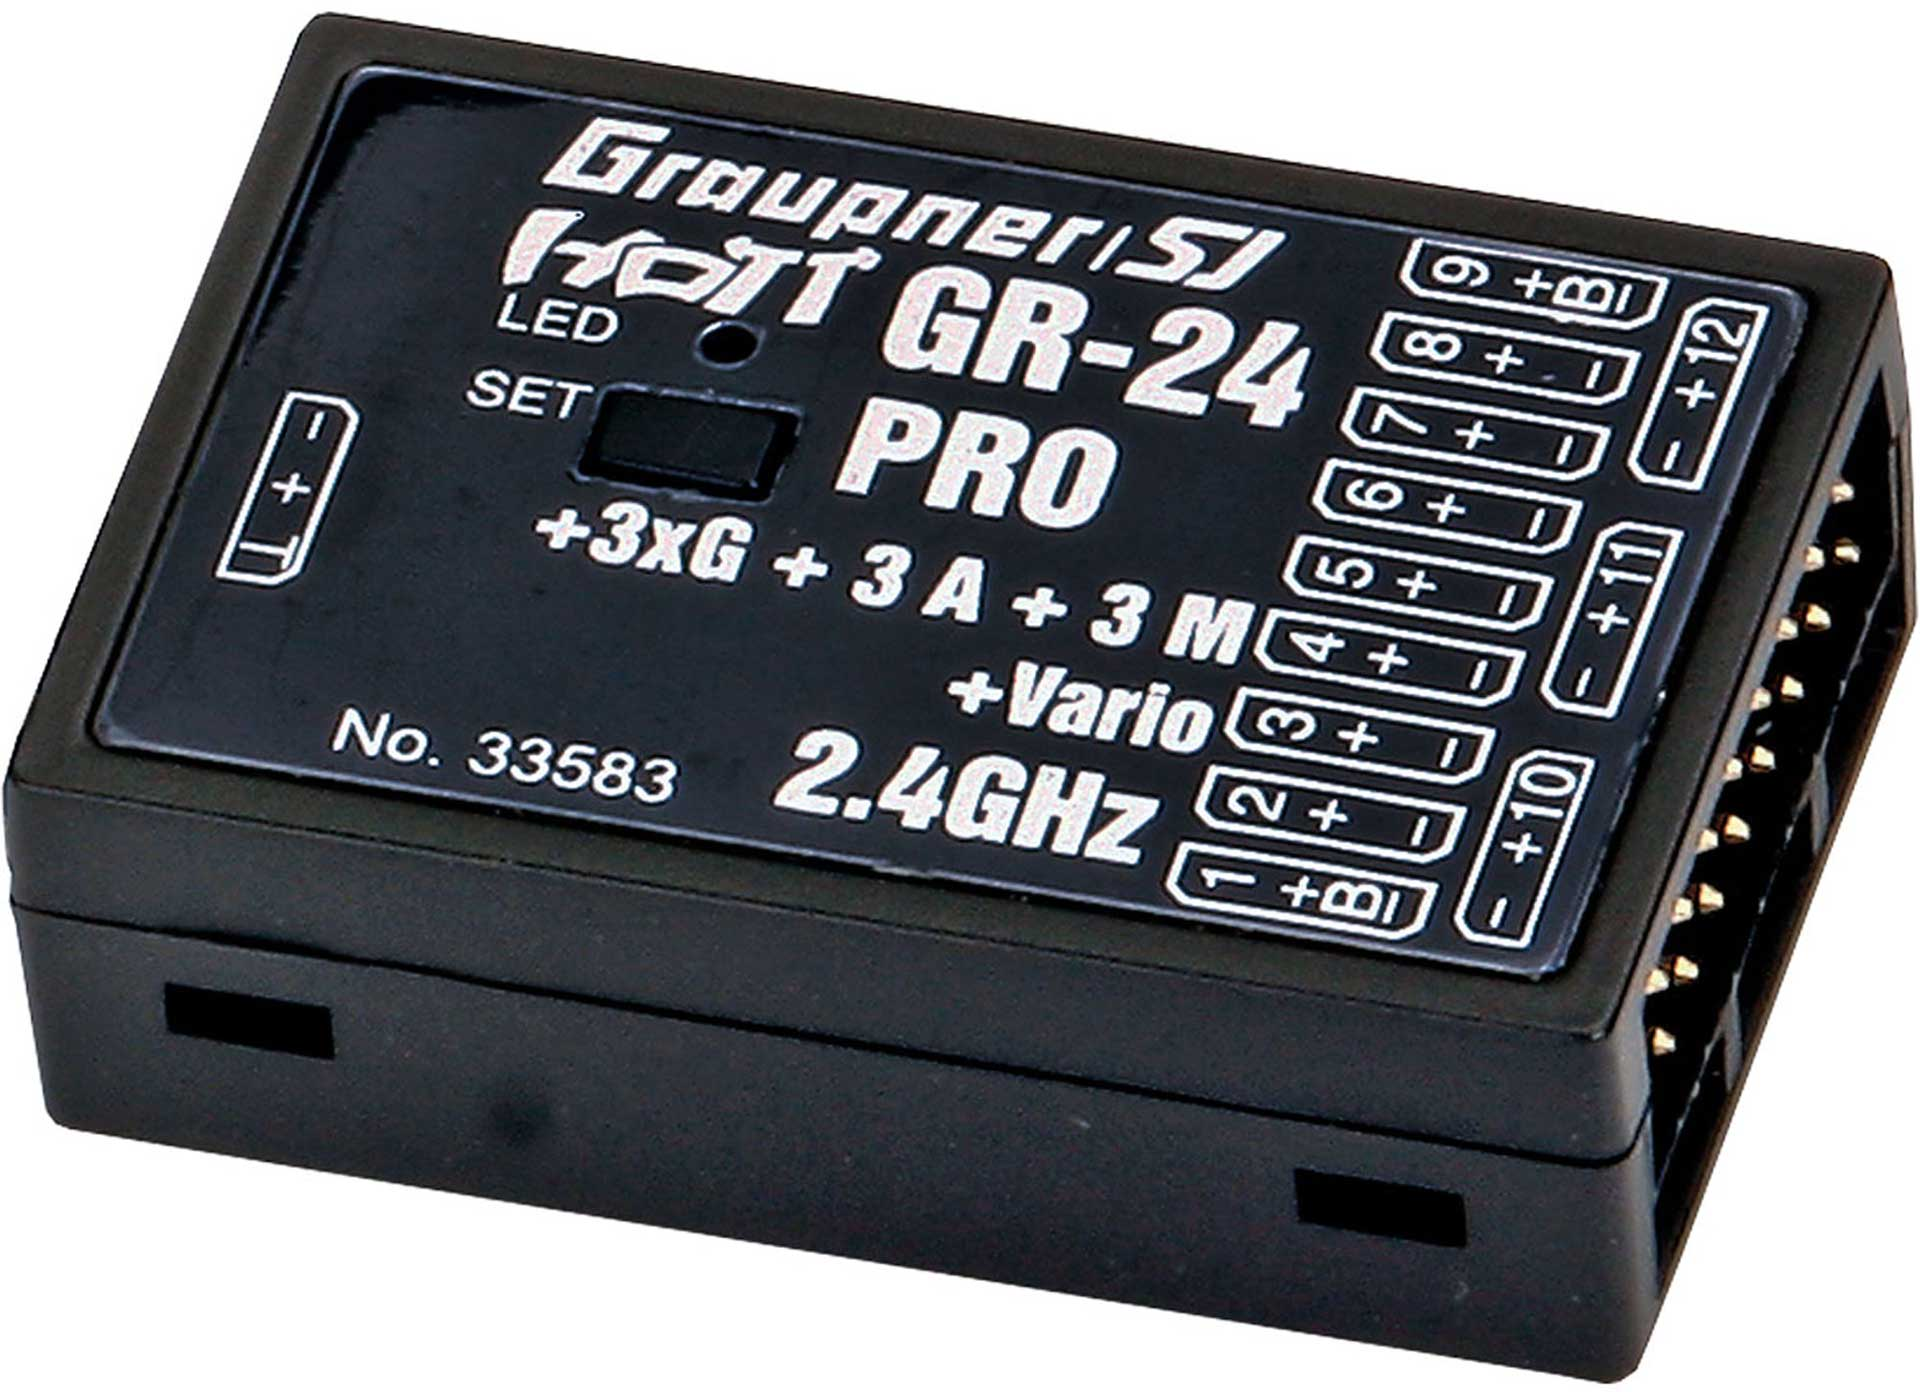 GRAUPNER GR-24 PER 3XG + 3A + 3M + VARIO 2,4GHZ HOTT WITH 3-AXIS GYRO AND VARIO RECEIVER